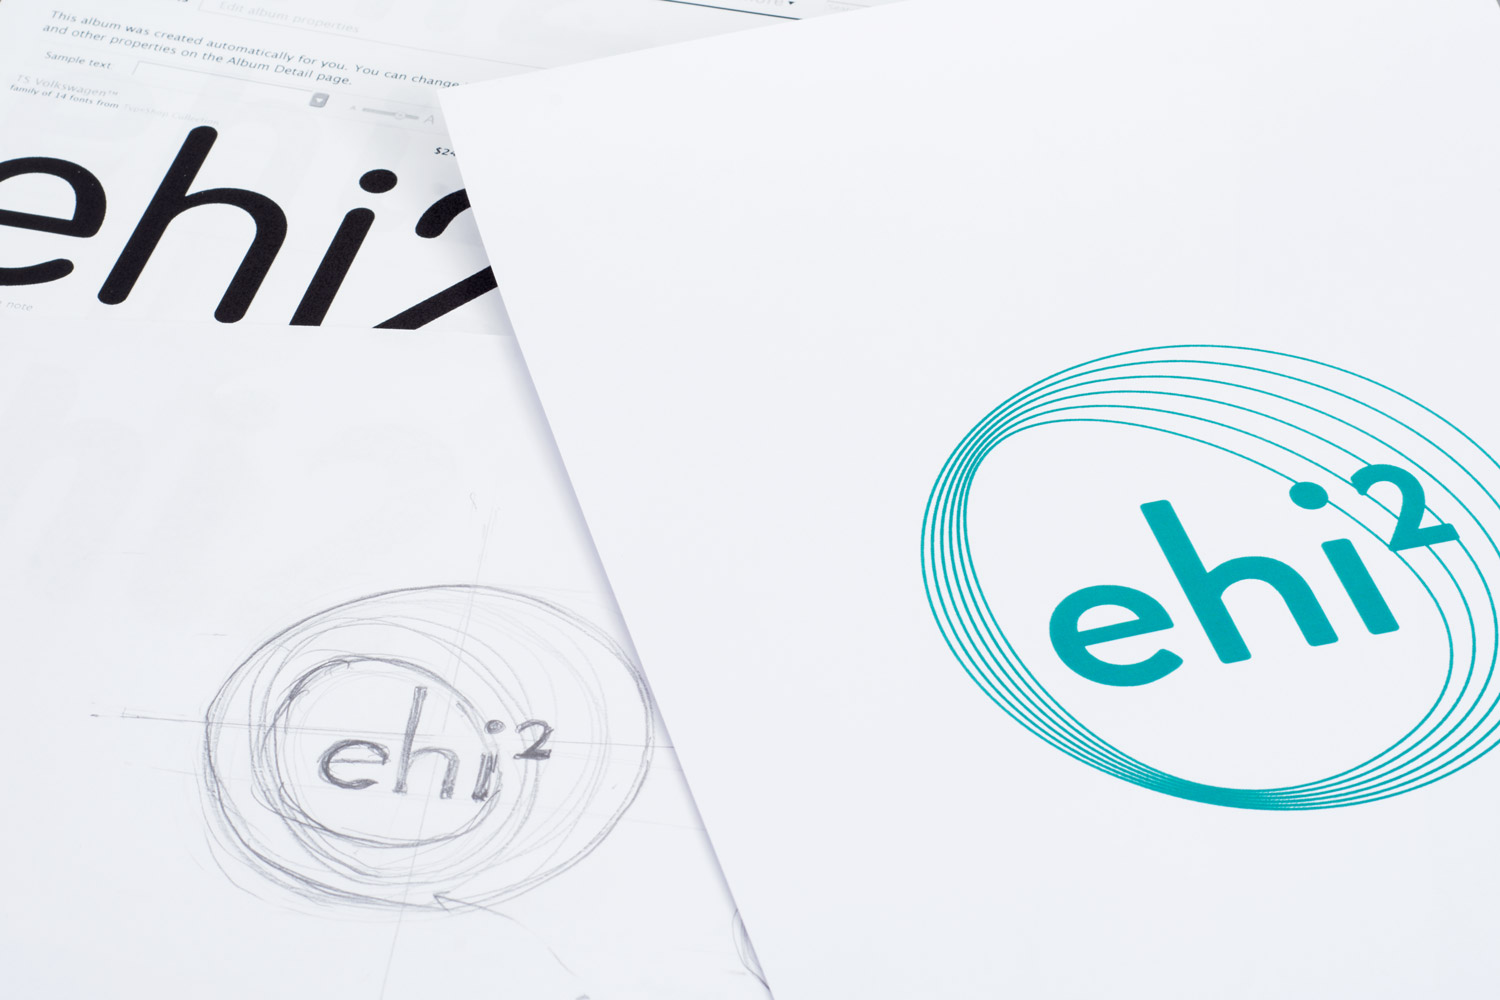 Sketches of the ehi2 logo designs